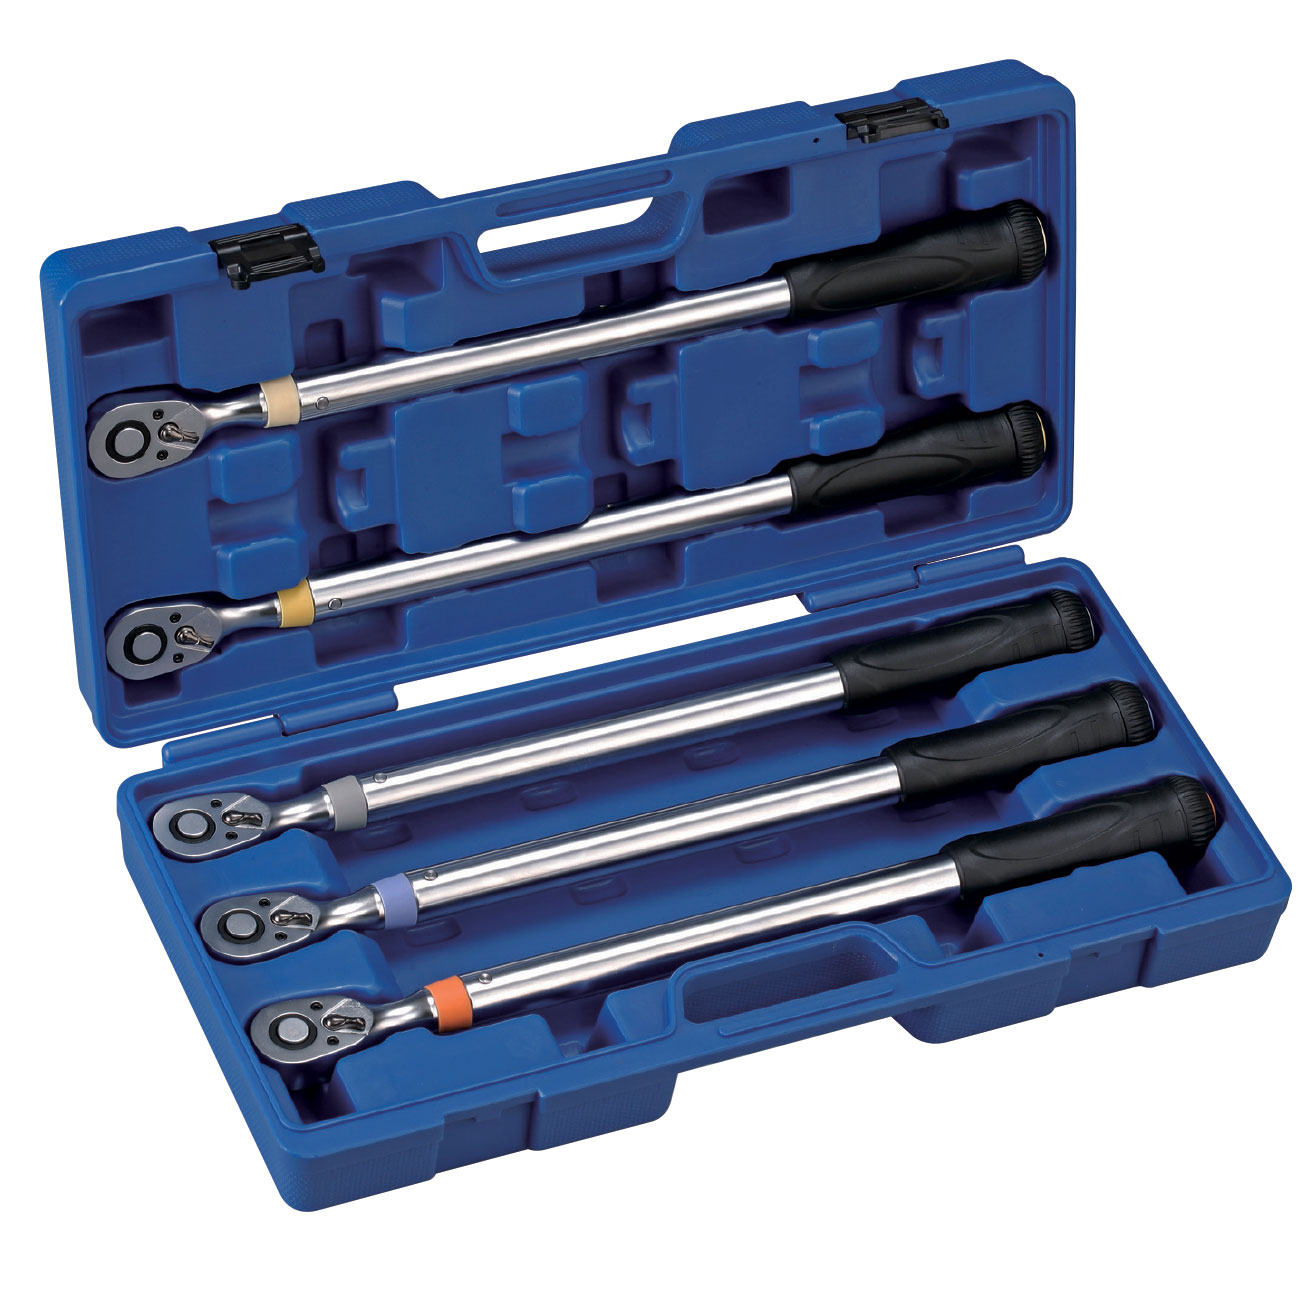 5PC 1/2″ Preset Torque Wrench Set